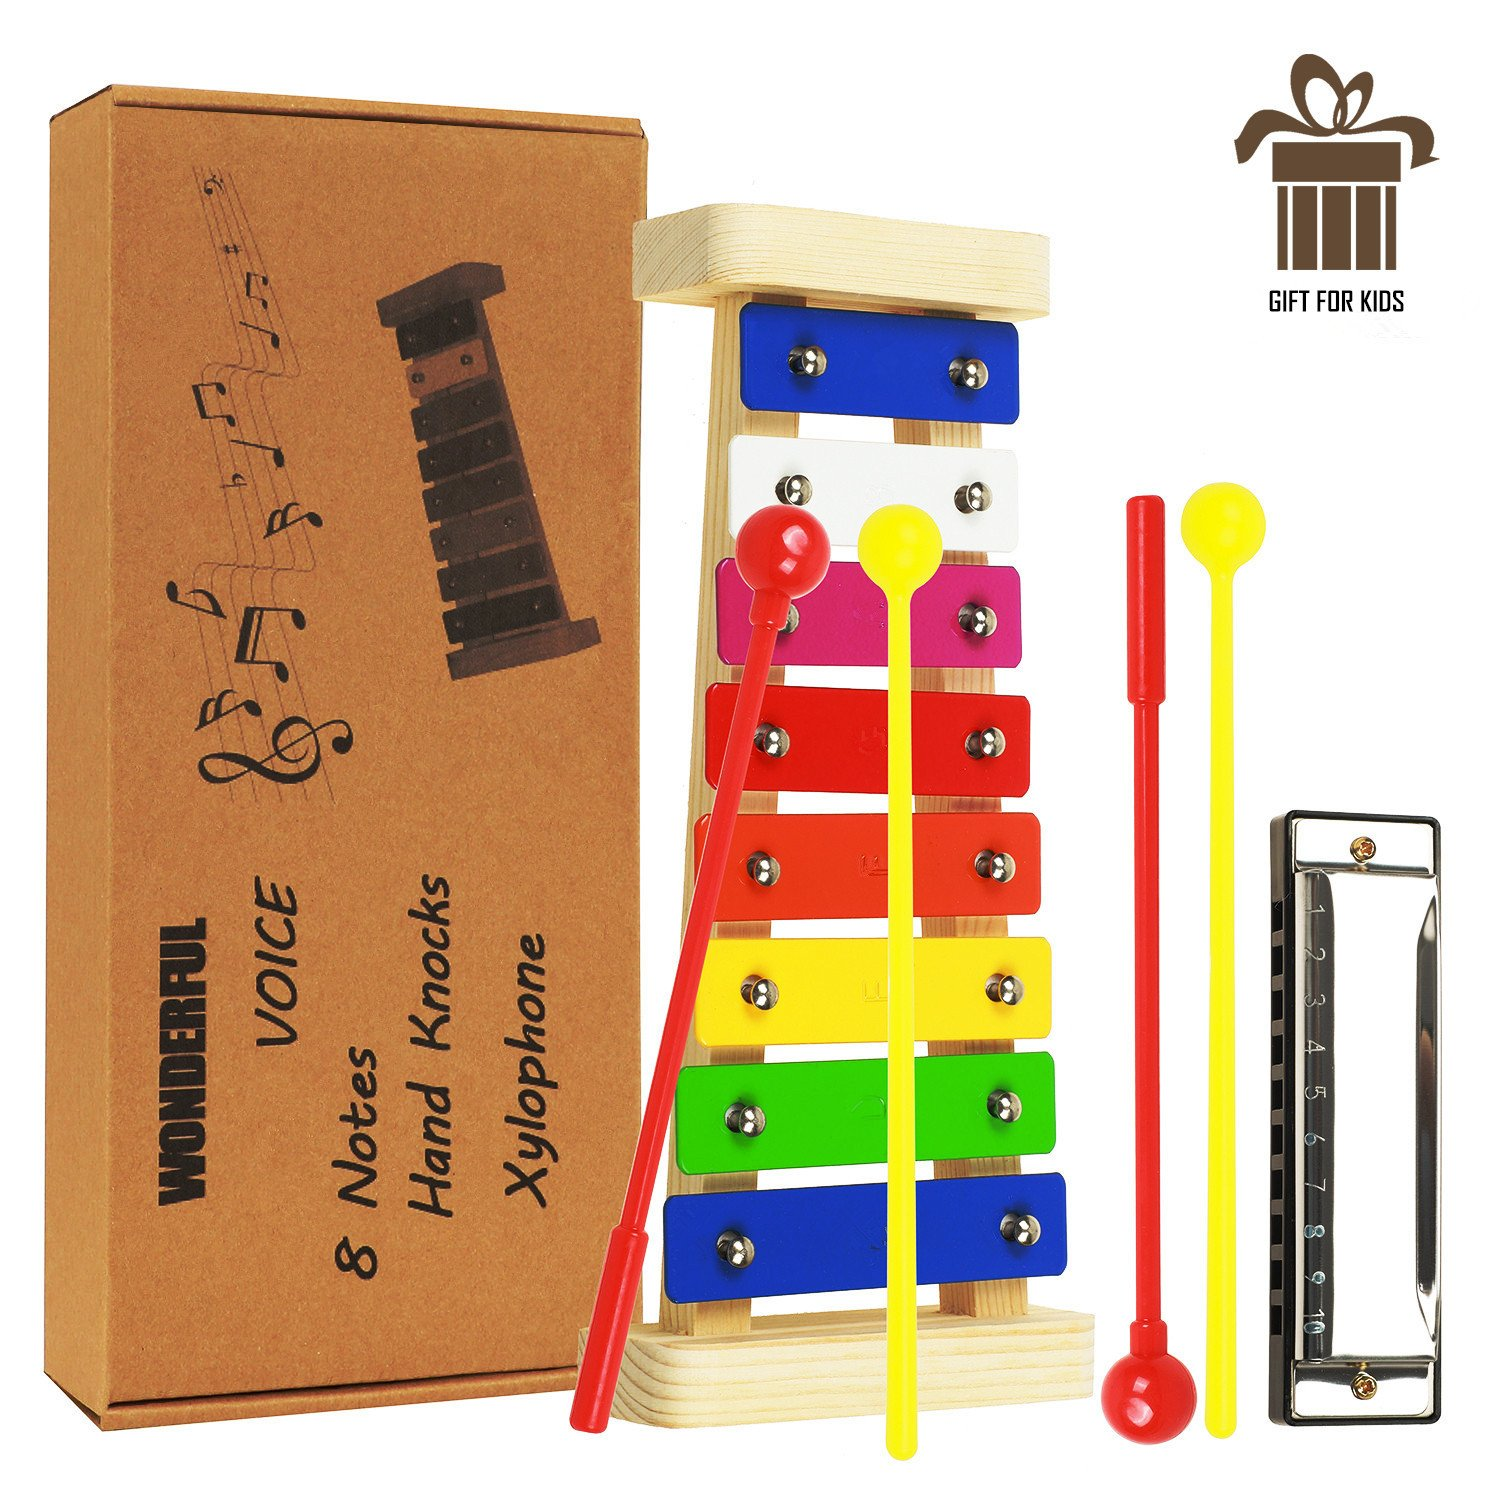 Xylophone for Kids, Best Holiday Birthday Gift Wood Xylophone for Children, Kids Musical Instruments 8 Notes Metal Keys Glockenspiel, Coming with 4 Child Safe Plastic Mallets and Harmonica, Music Card